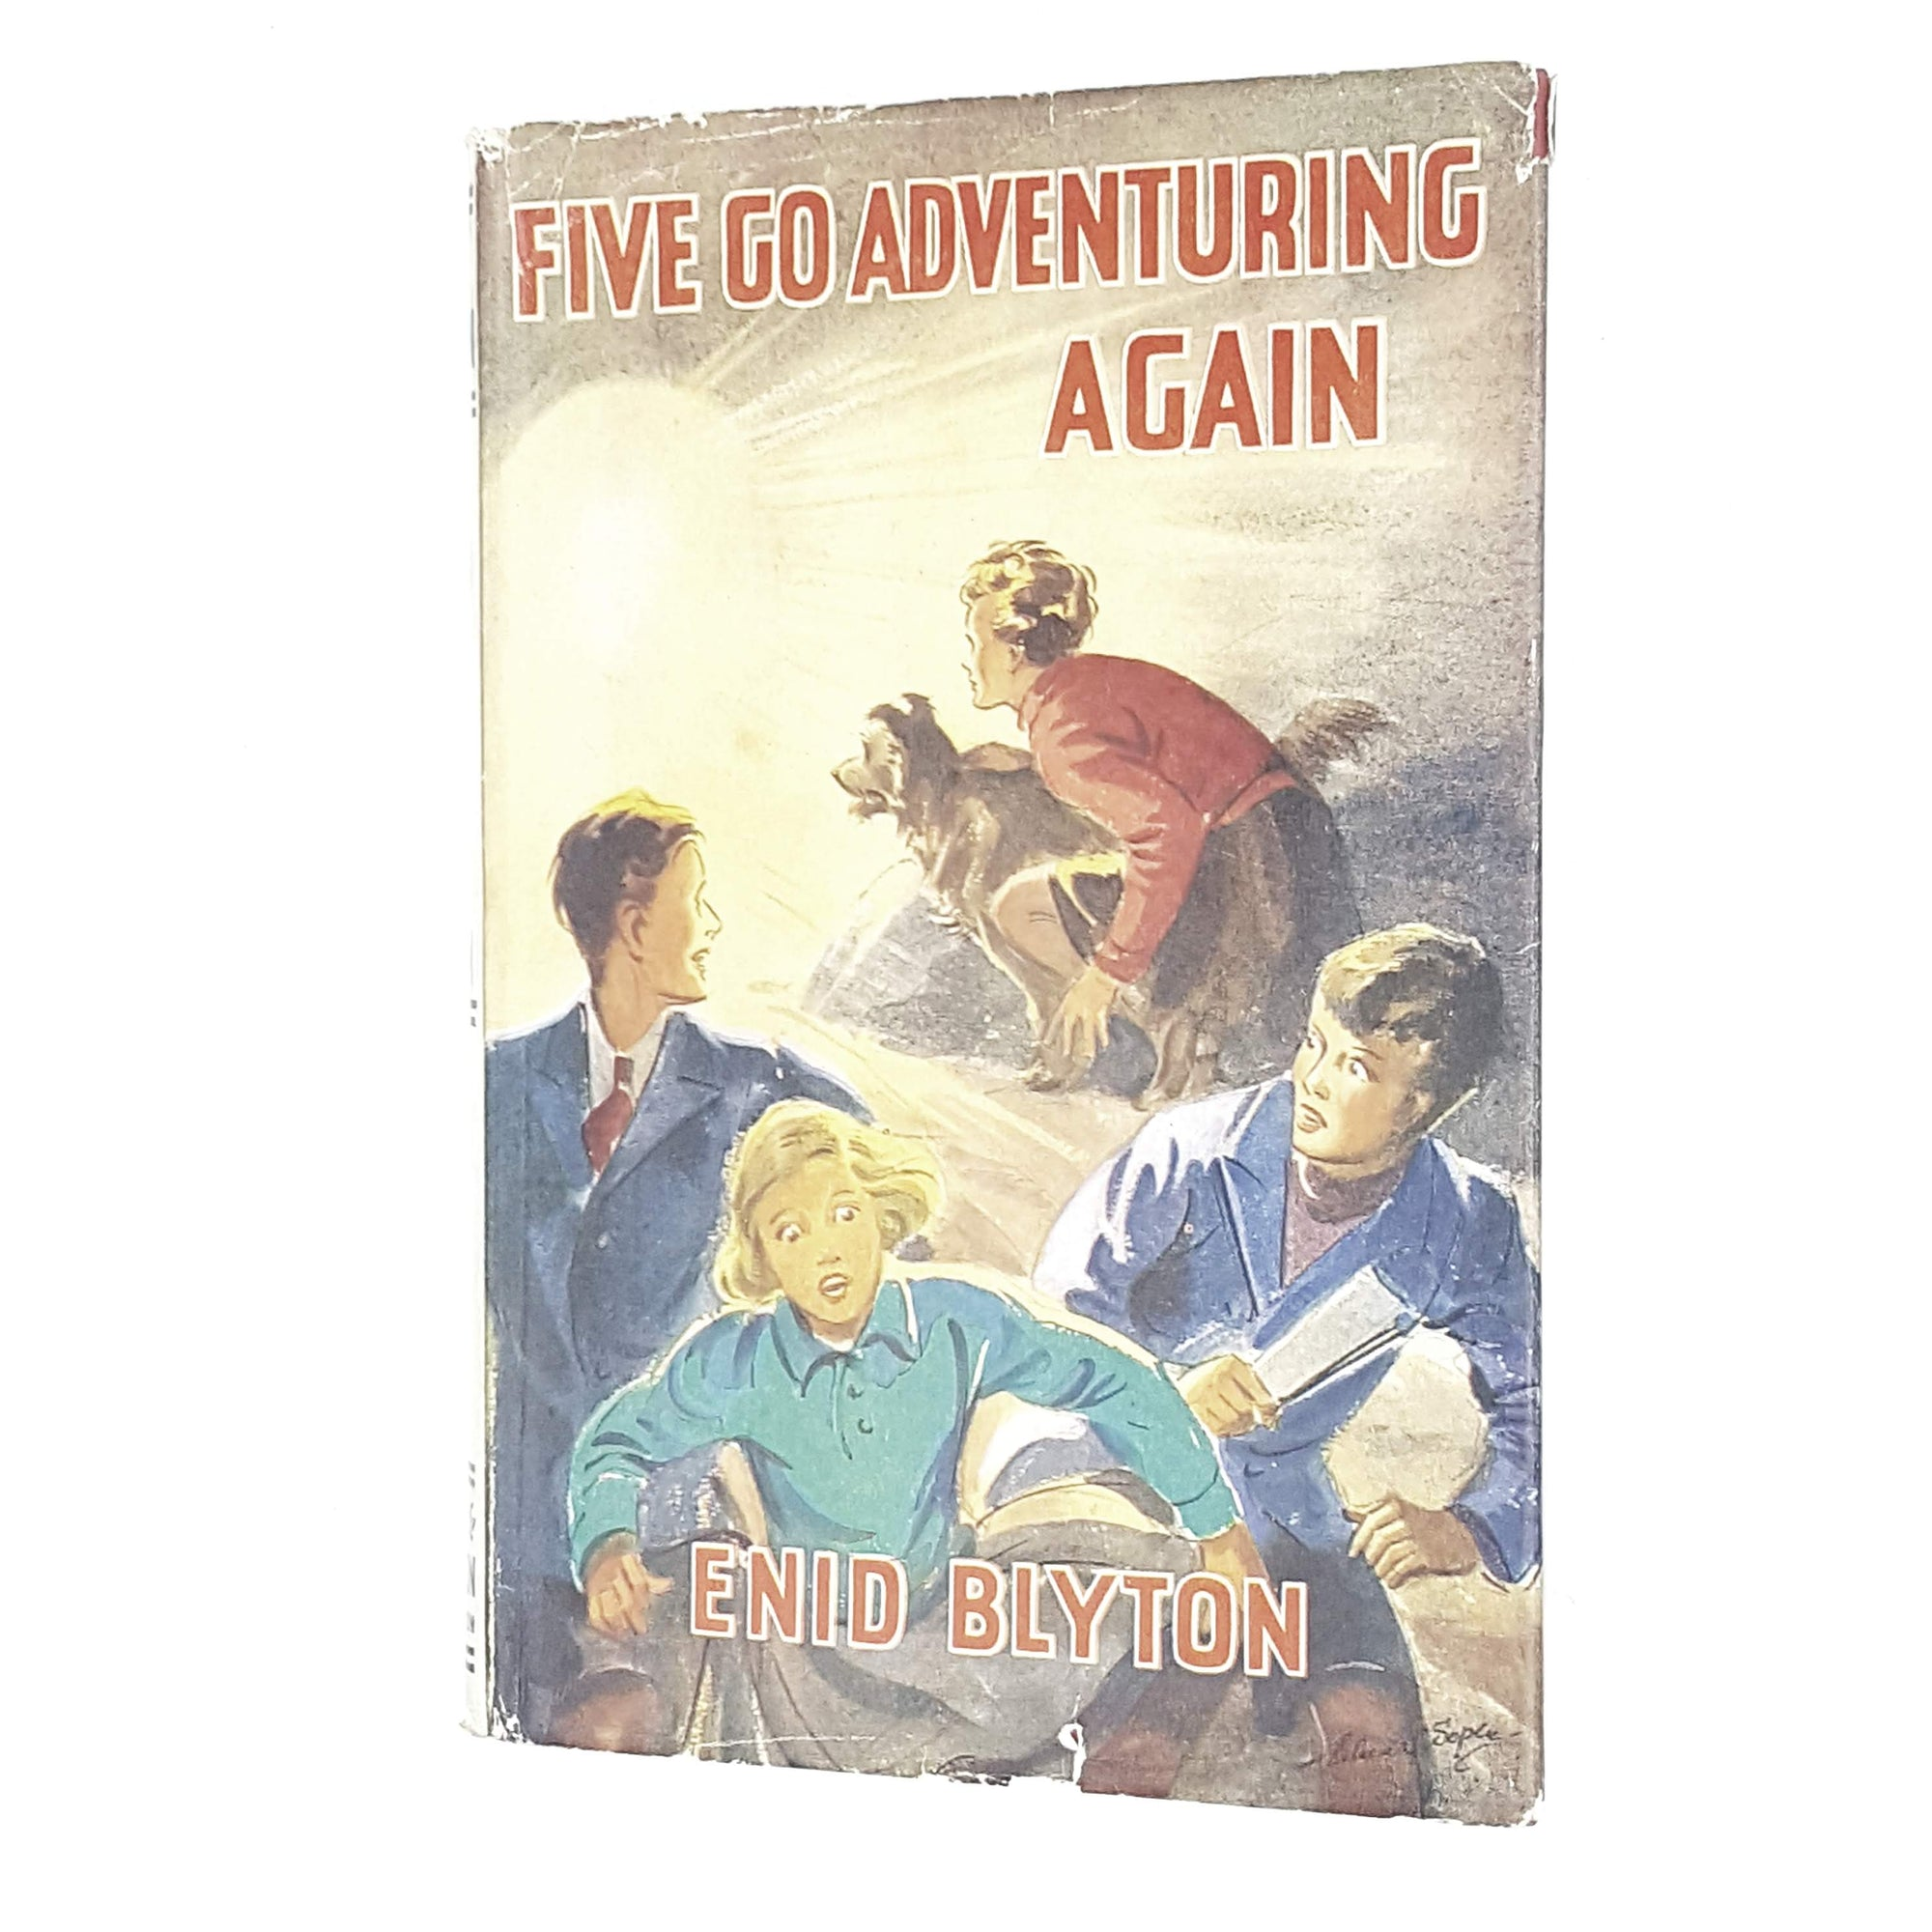 Enid Blyton's Five Go Adventuring Again 1949